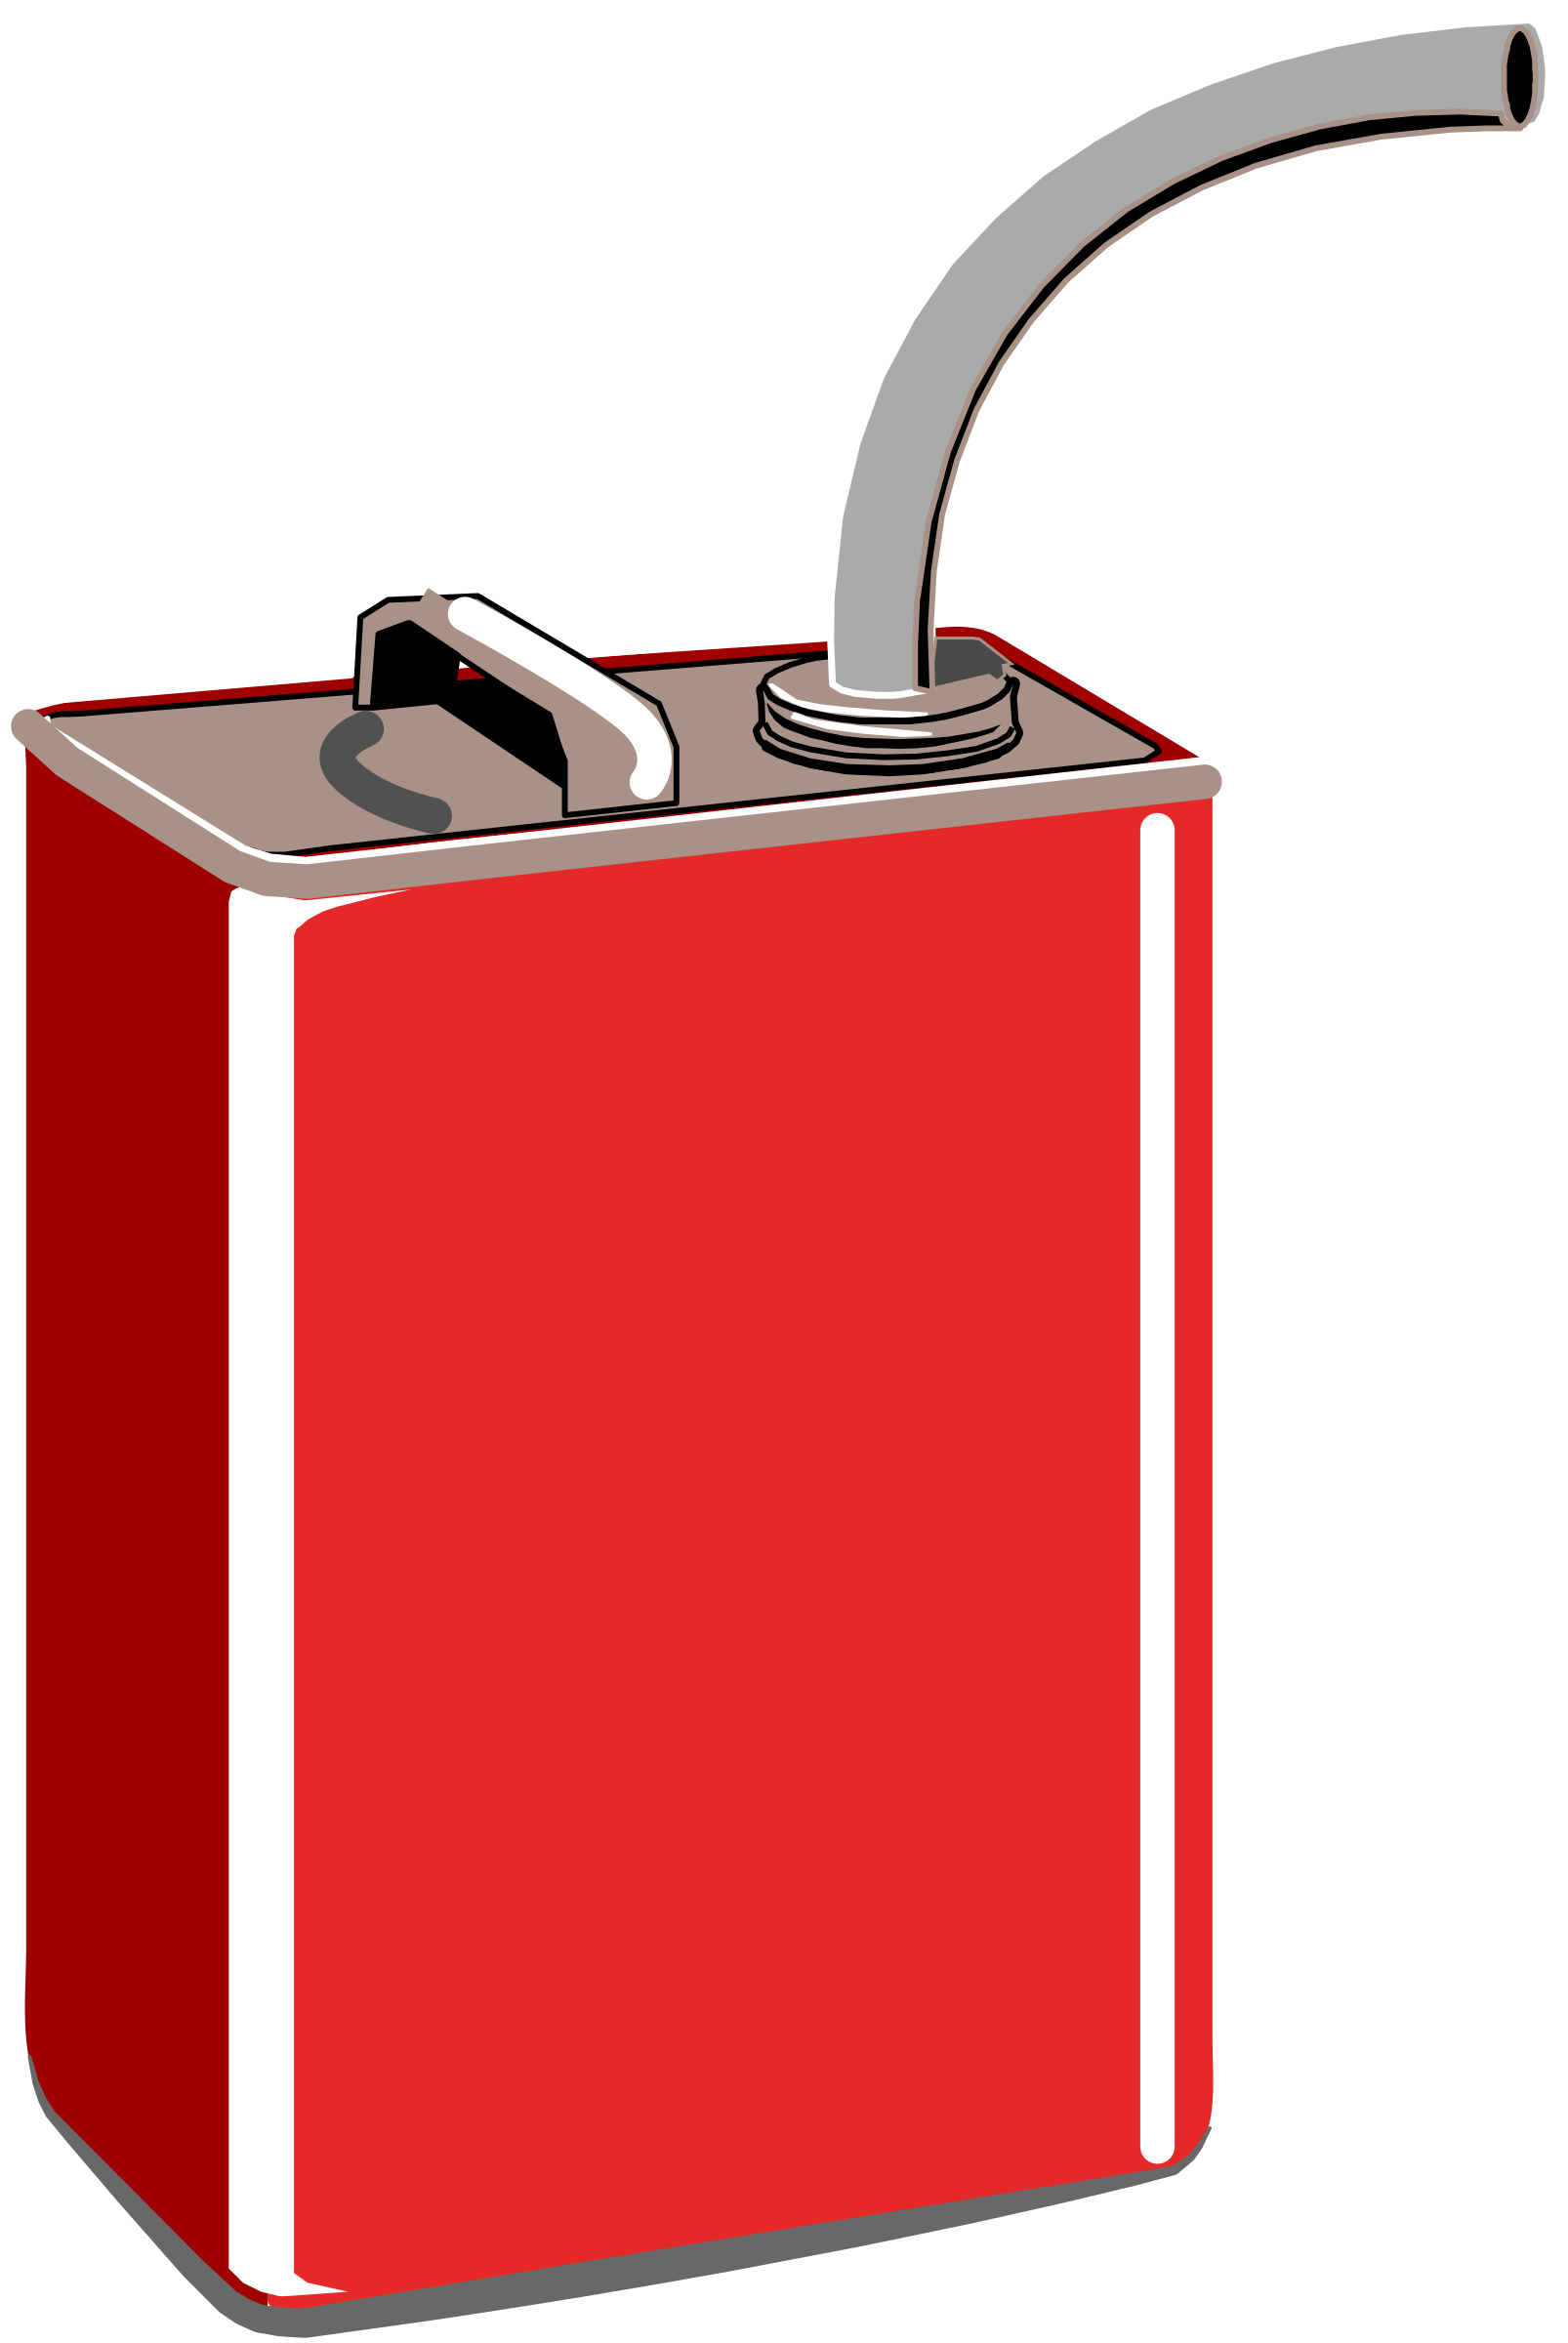 can clipart illustration